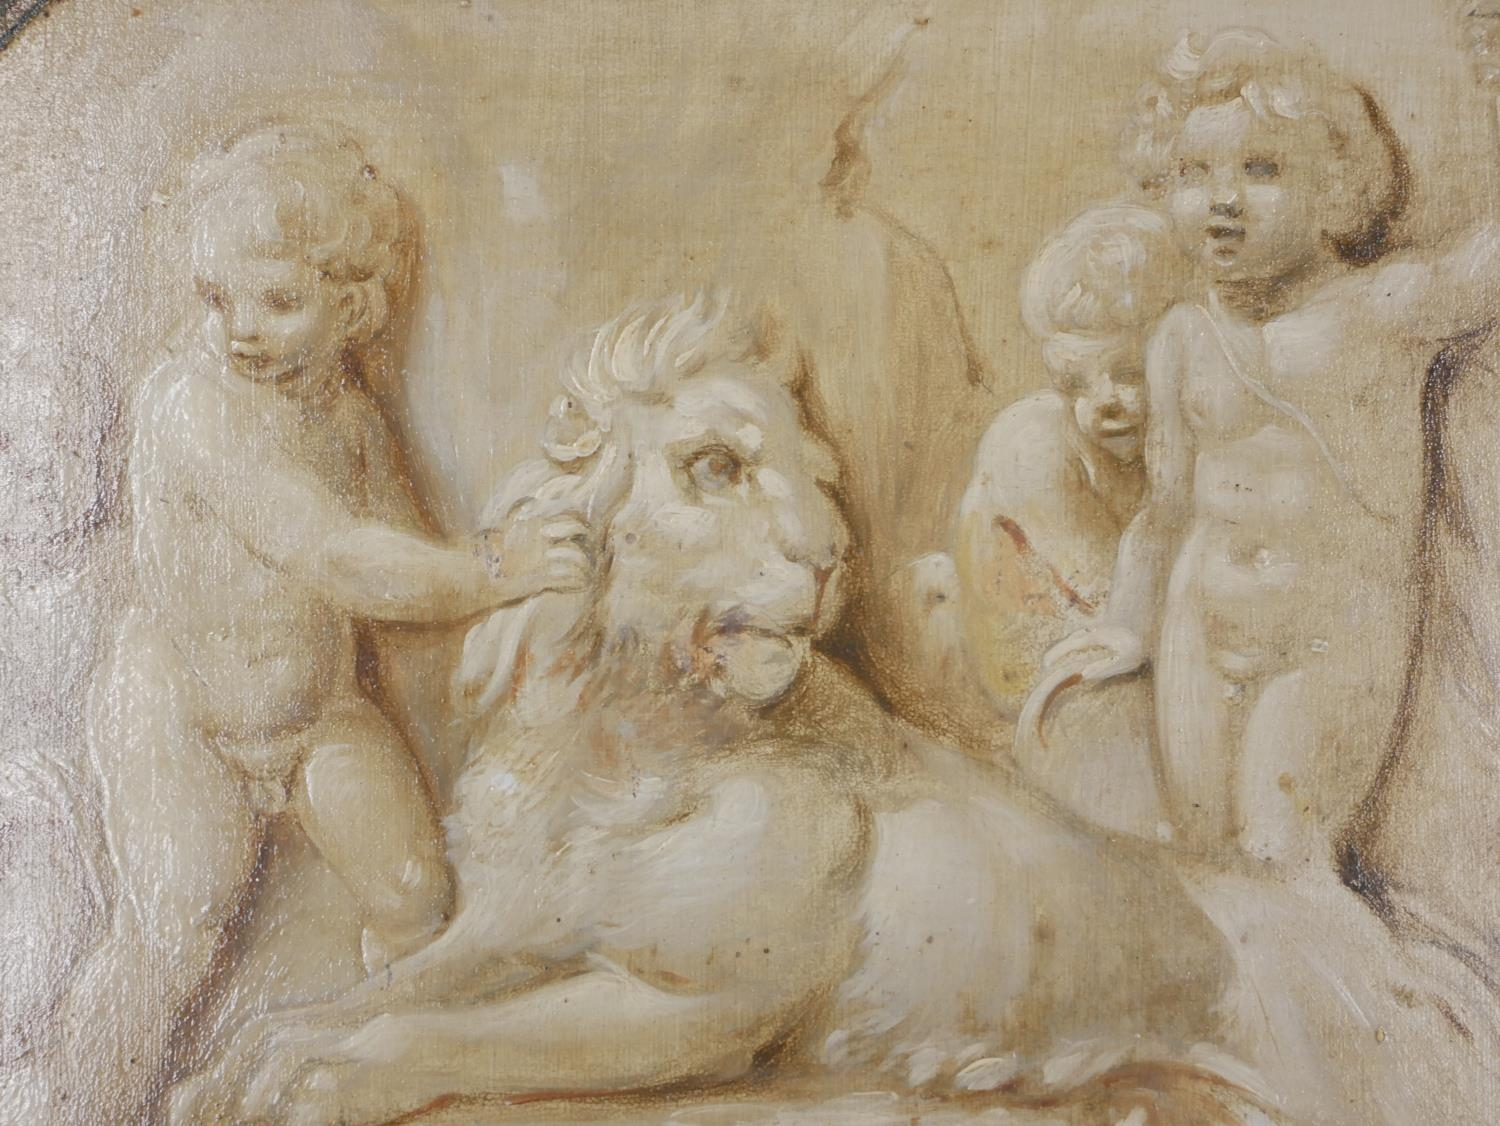 ATTRIBUTED TO JACOB DE WIT, AMSTERDAM, 1695 - 1754, A PAIR OF 18TH CENTURY OILS ON PANEL Putti - Image 5 of 9